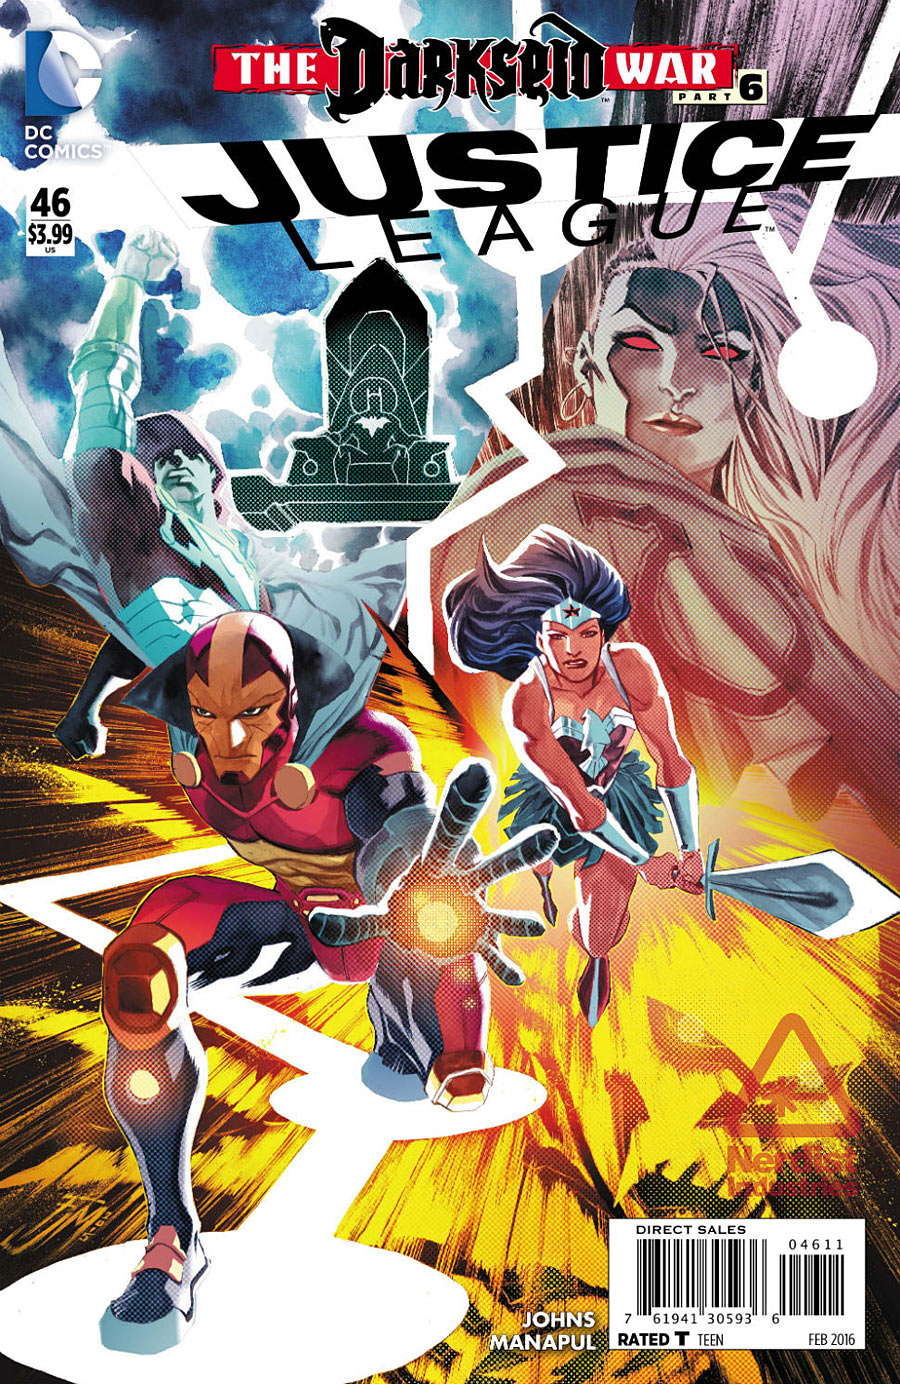 JUSTICE LEAGUE #46 (2011 New 52 Series)